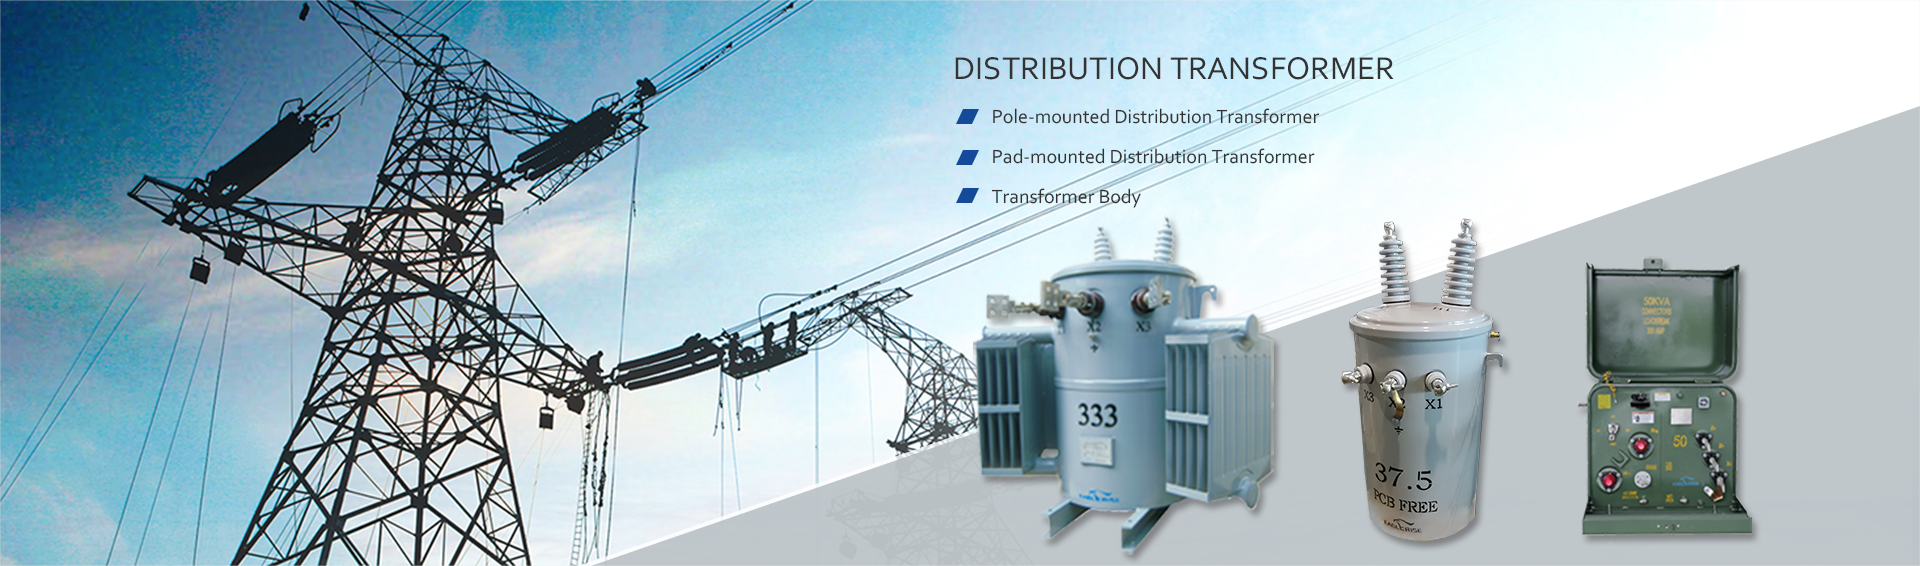 Transformador de distribución